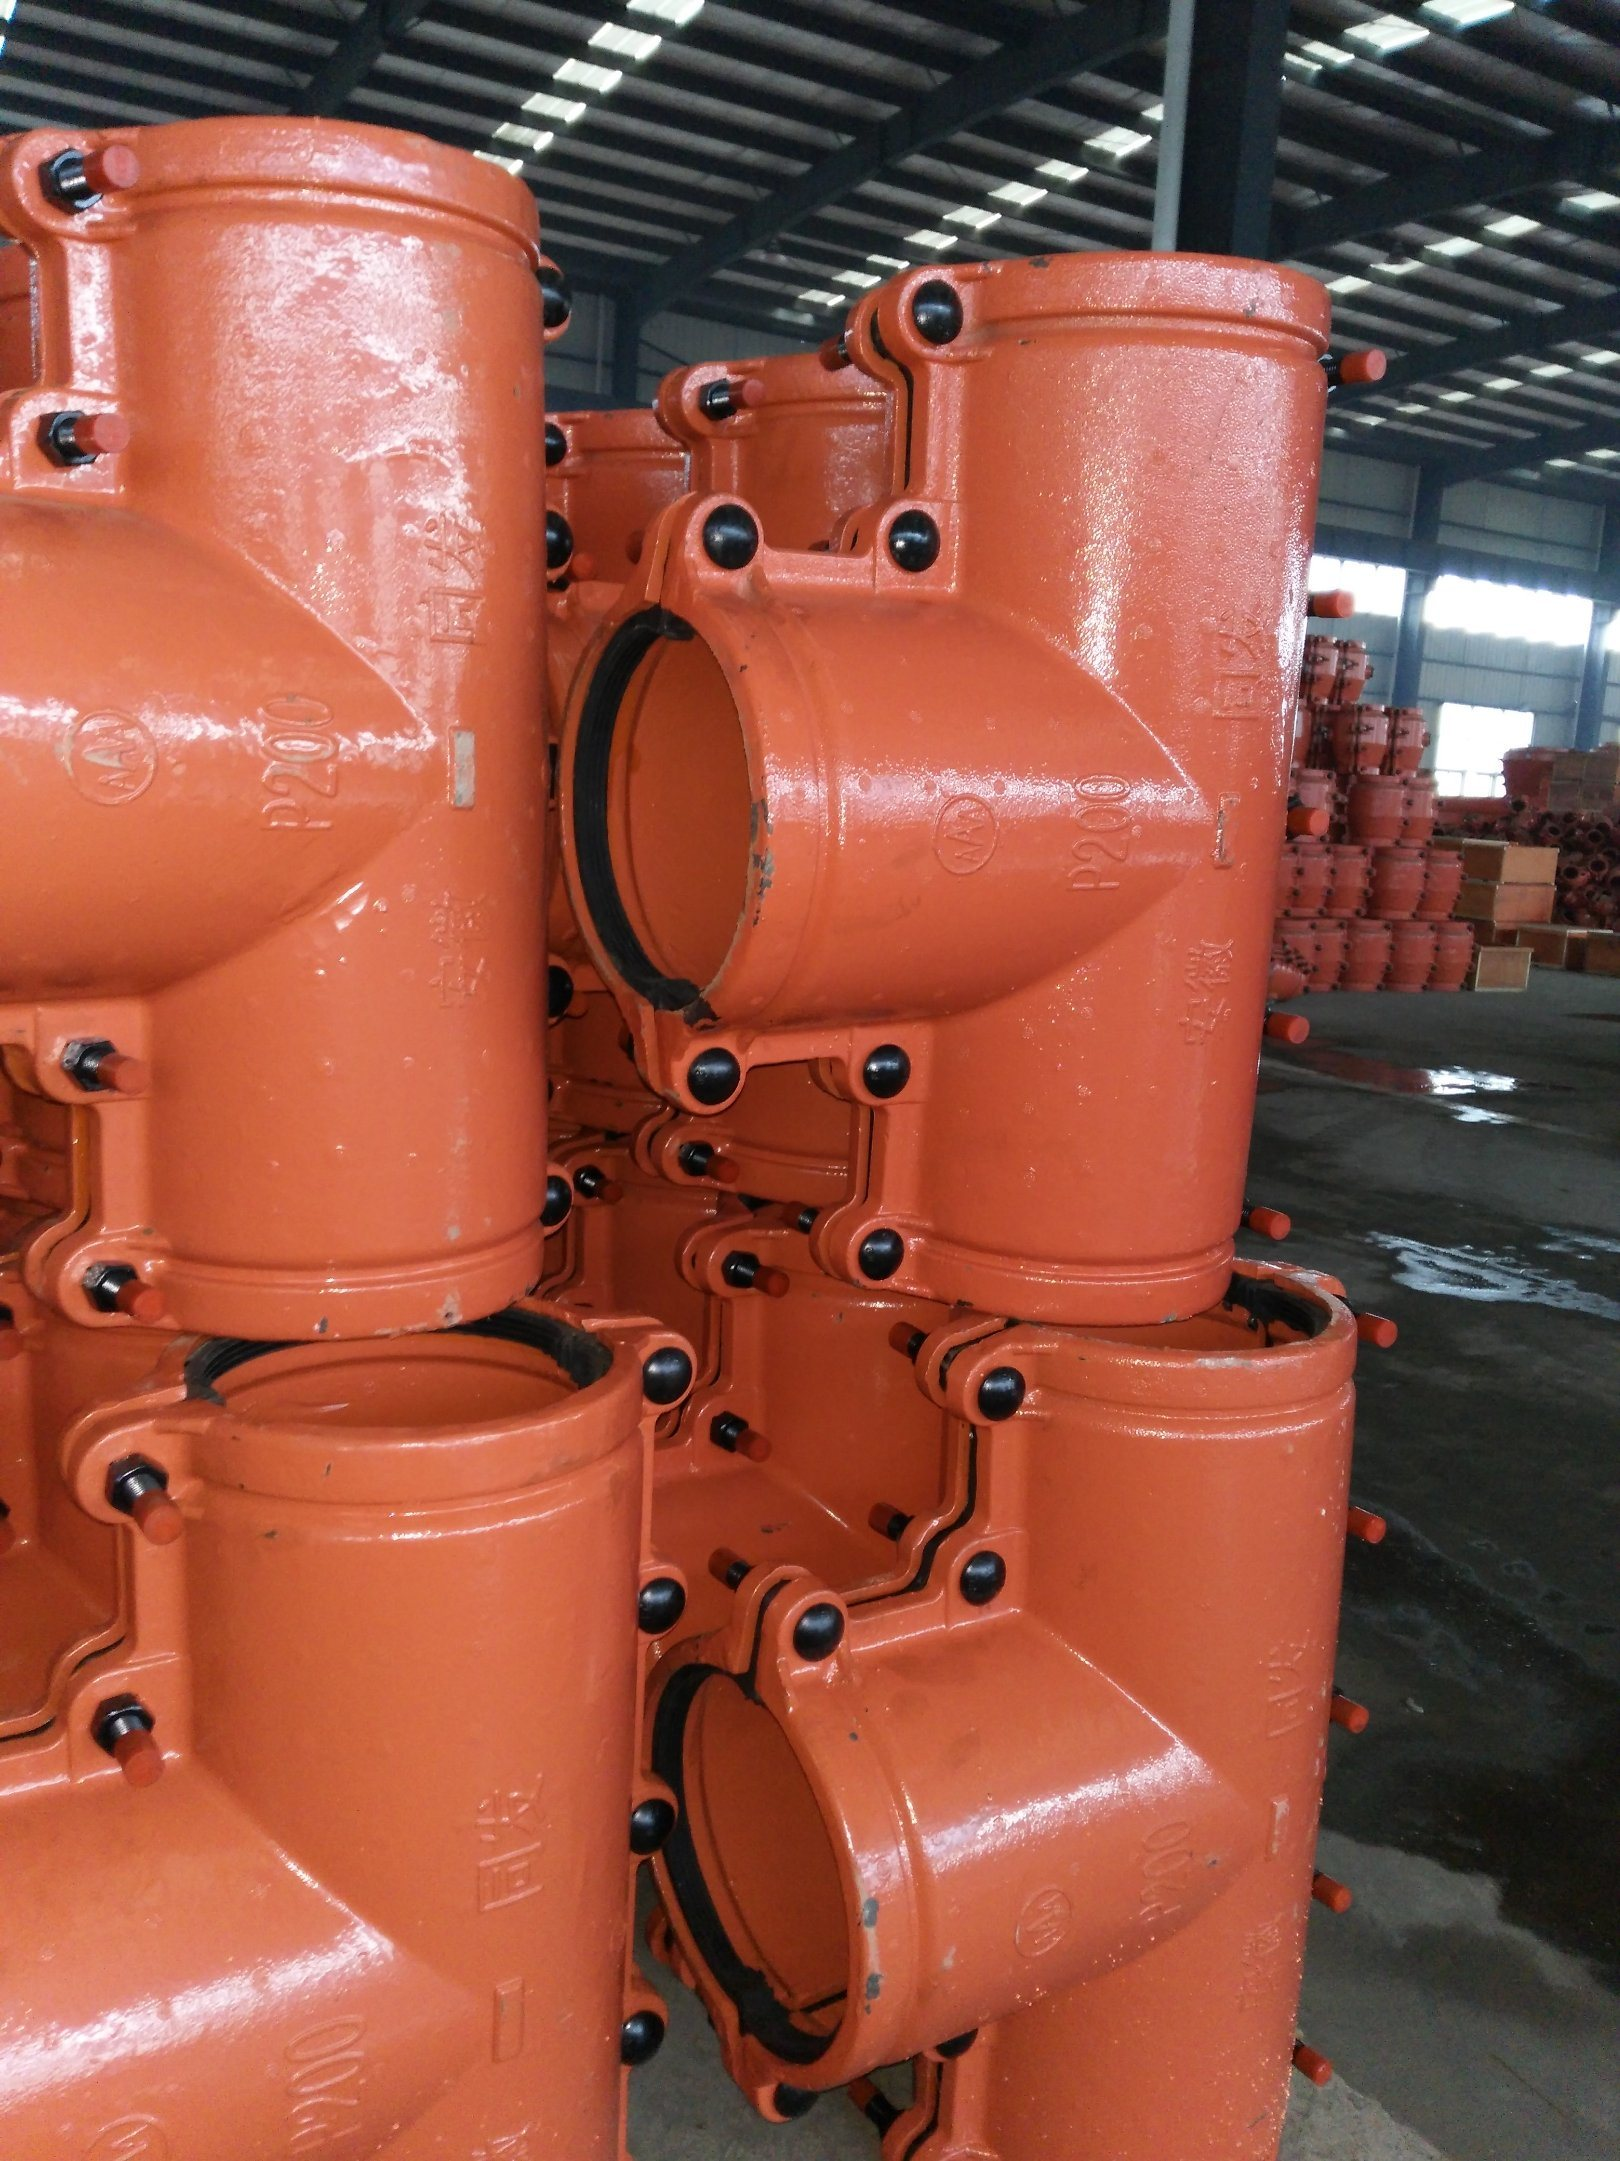 PE, PVC Pipe Repair Clamp Tee P200, Pipe Repair Coupling, Pipe Leak Repair Clamp, Leaking Pipe Quick Repair.